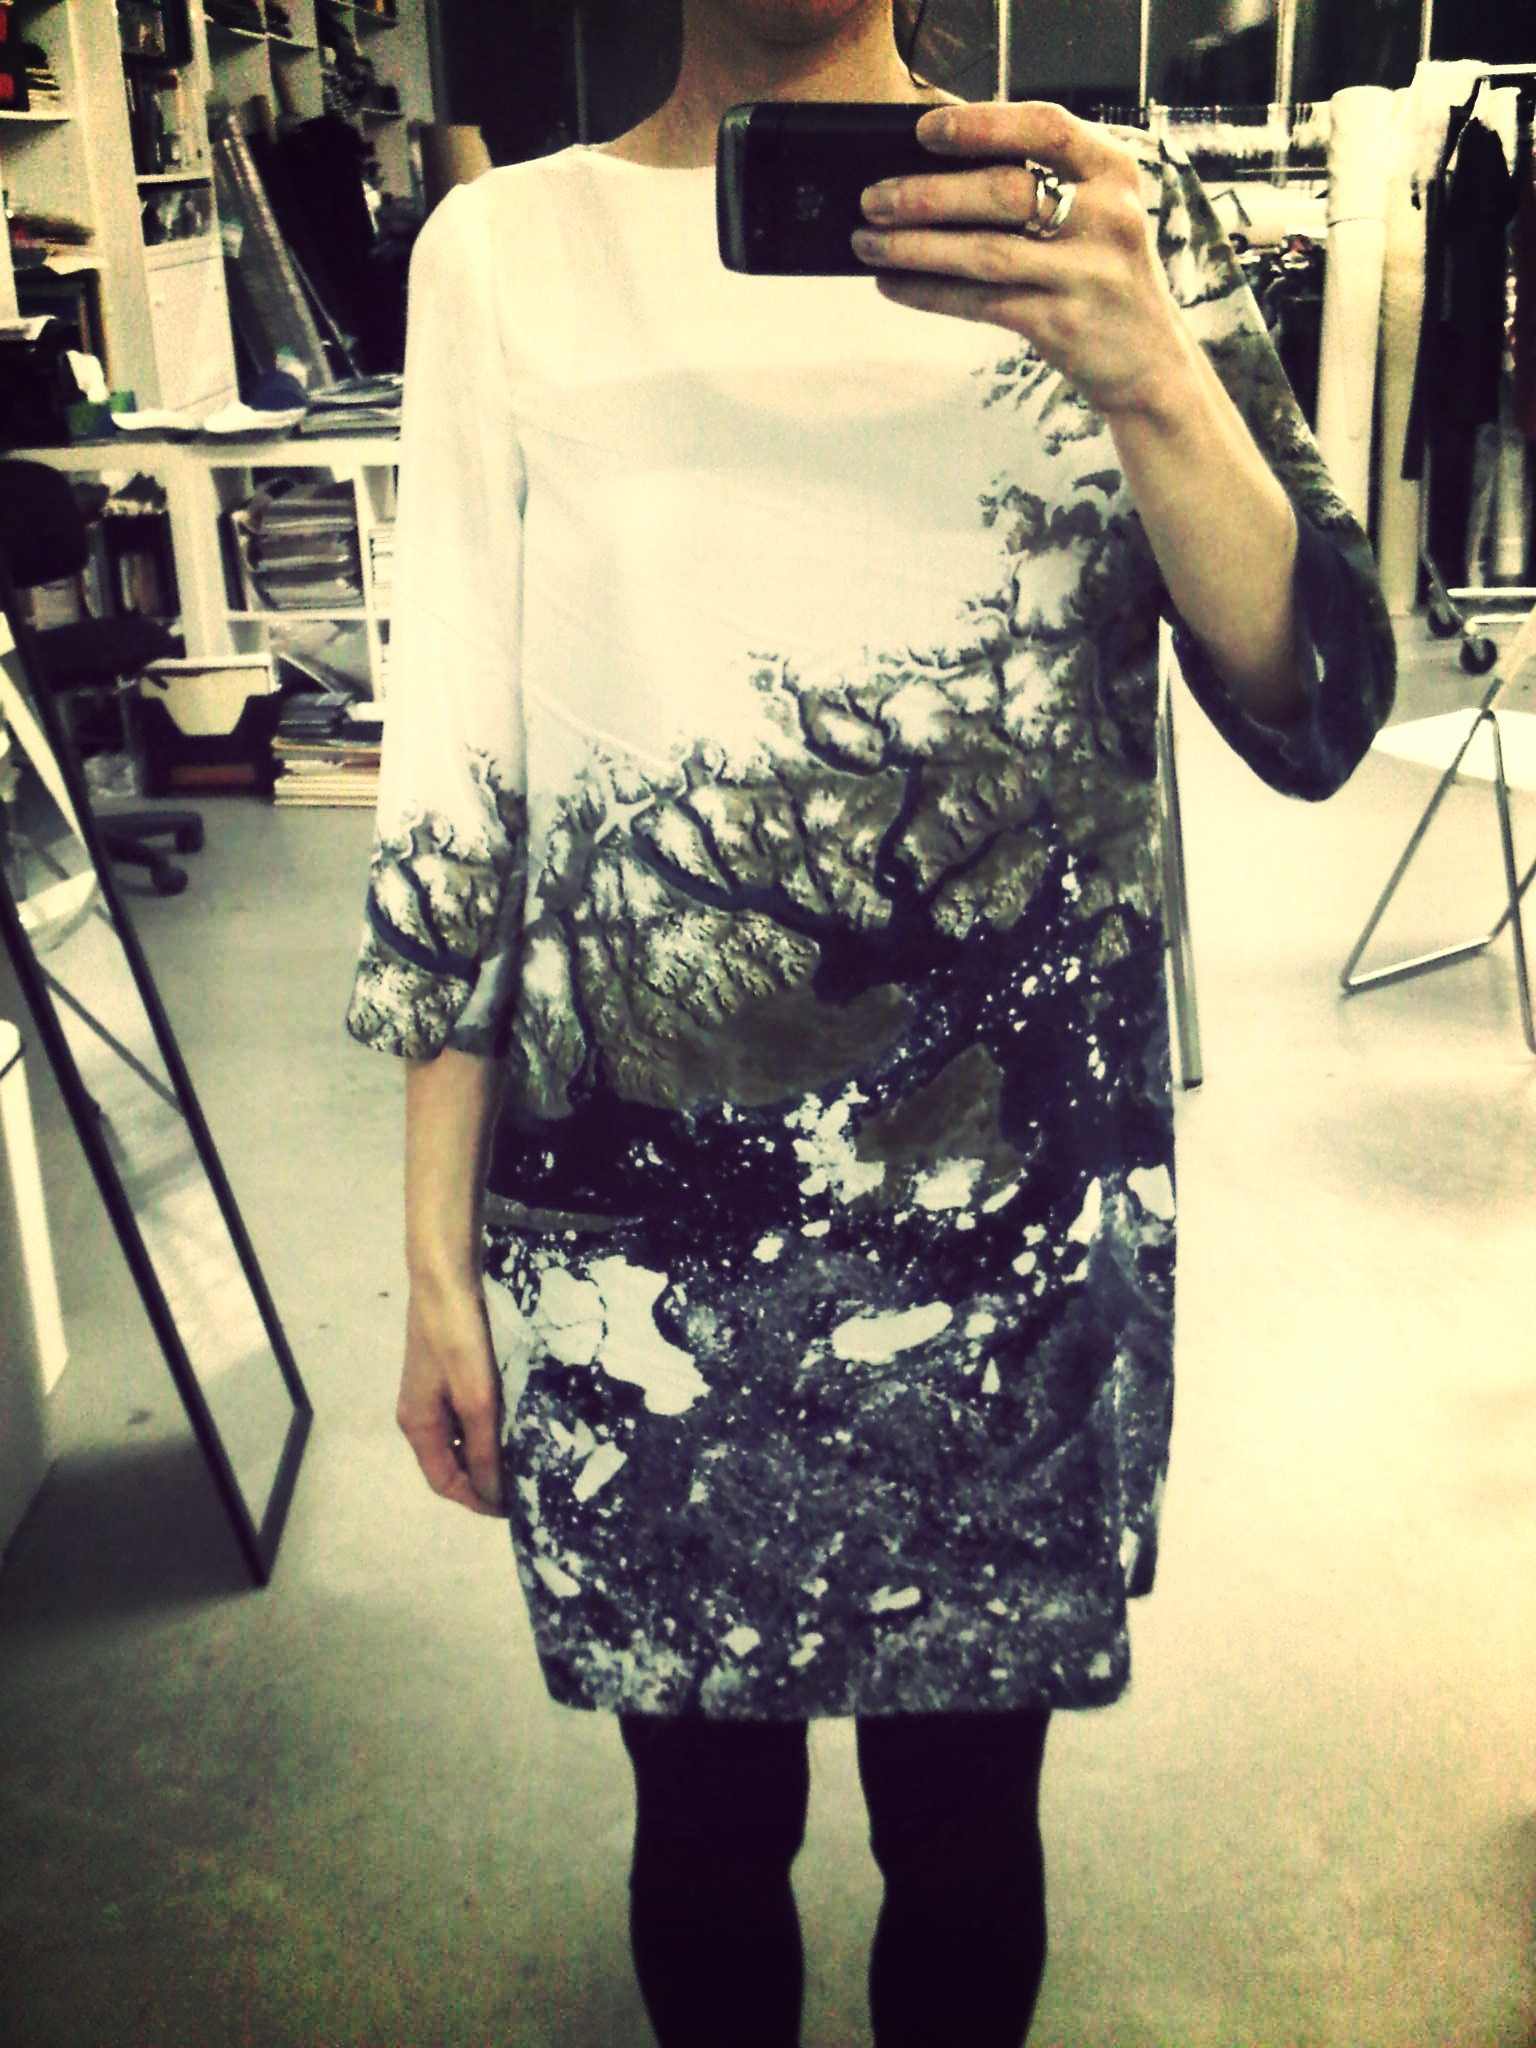 sneak peek on our new dress co-created with valérie dumaine #earth #nasa #creativecommons @slowfactory_